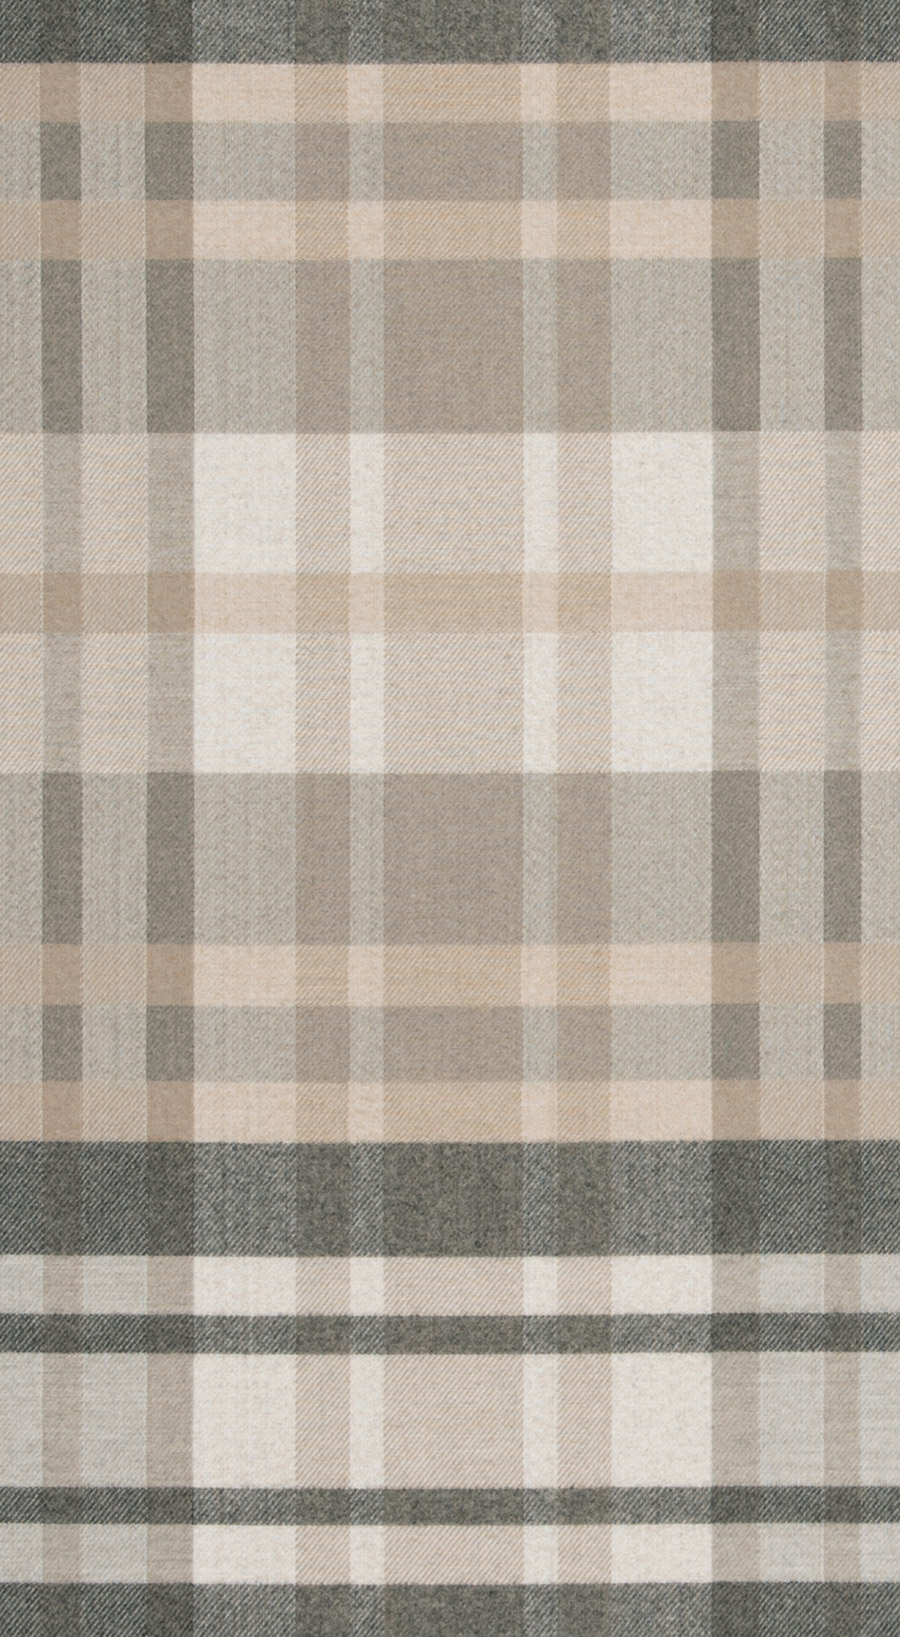 Plaid Taupe Romy Plaid Taupe Fabric S Harris